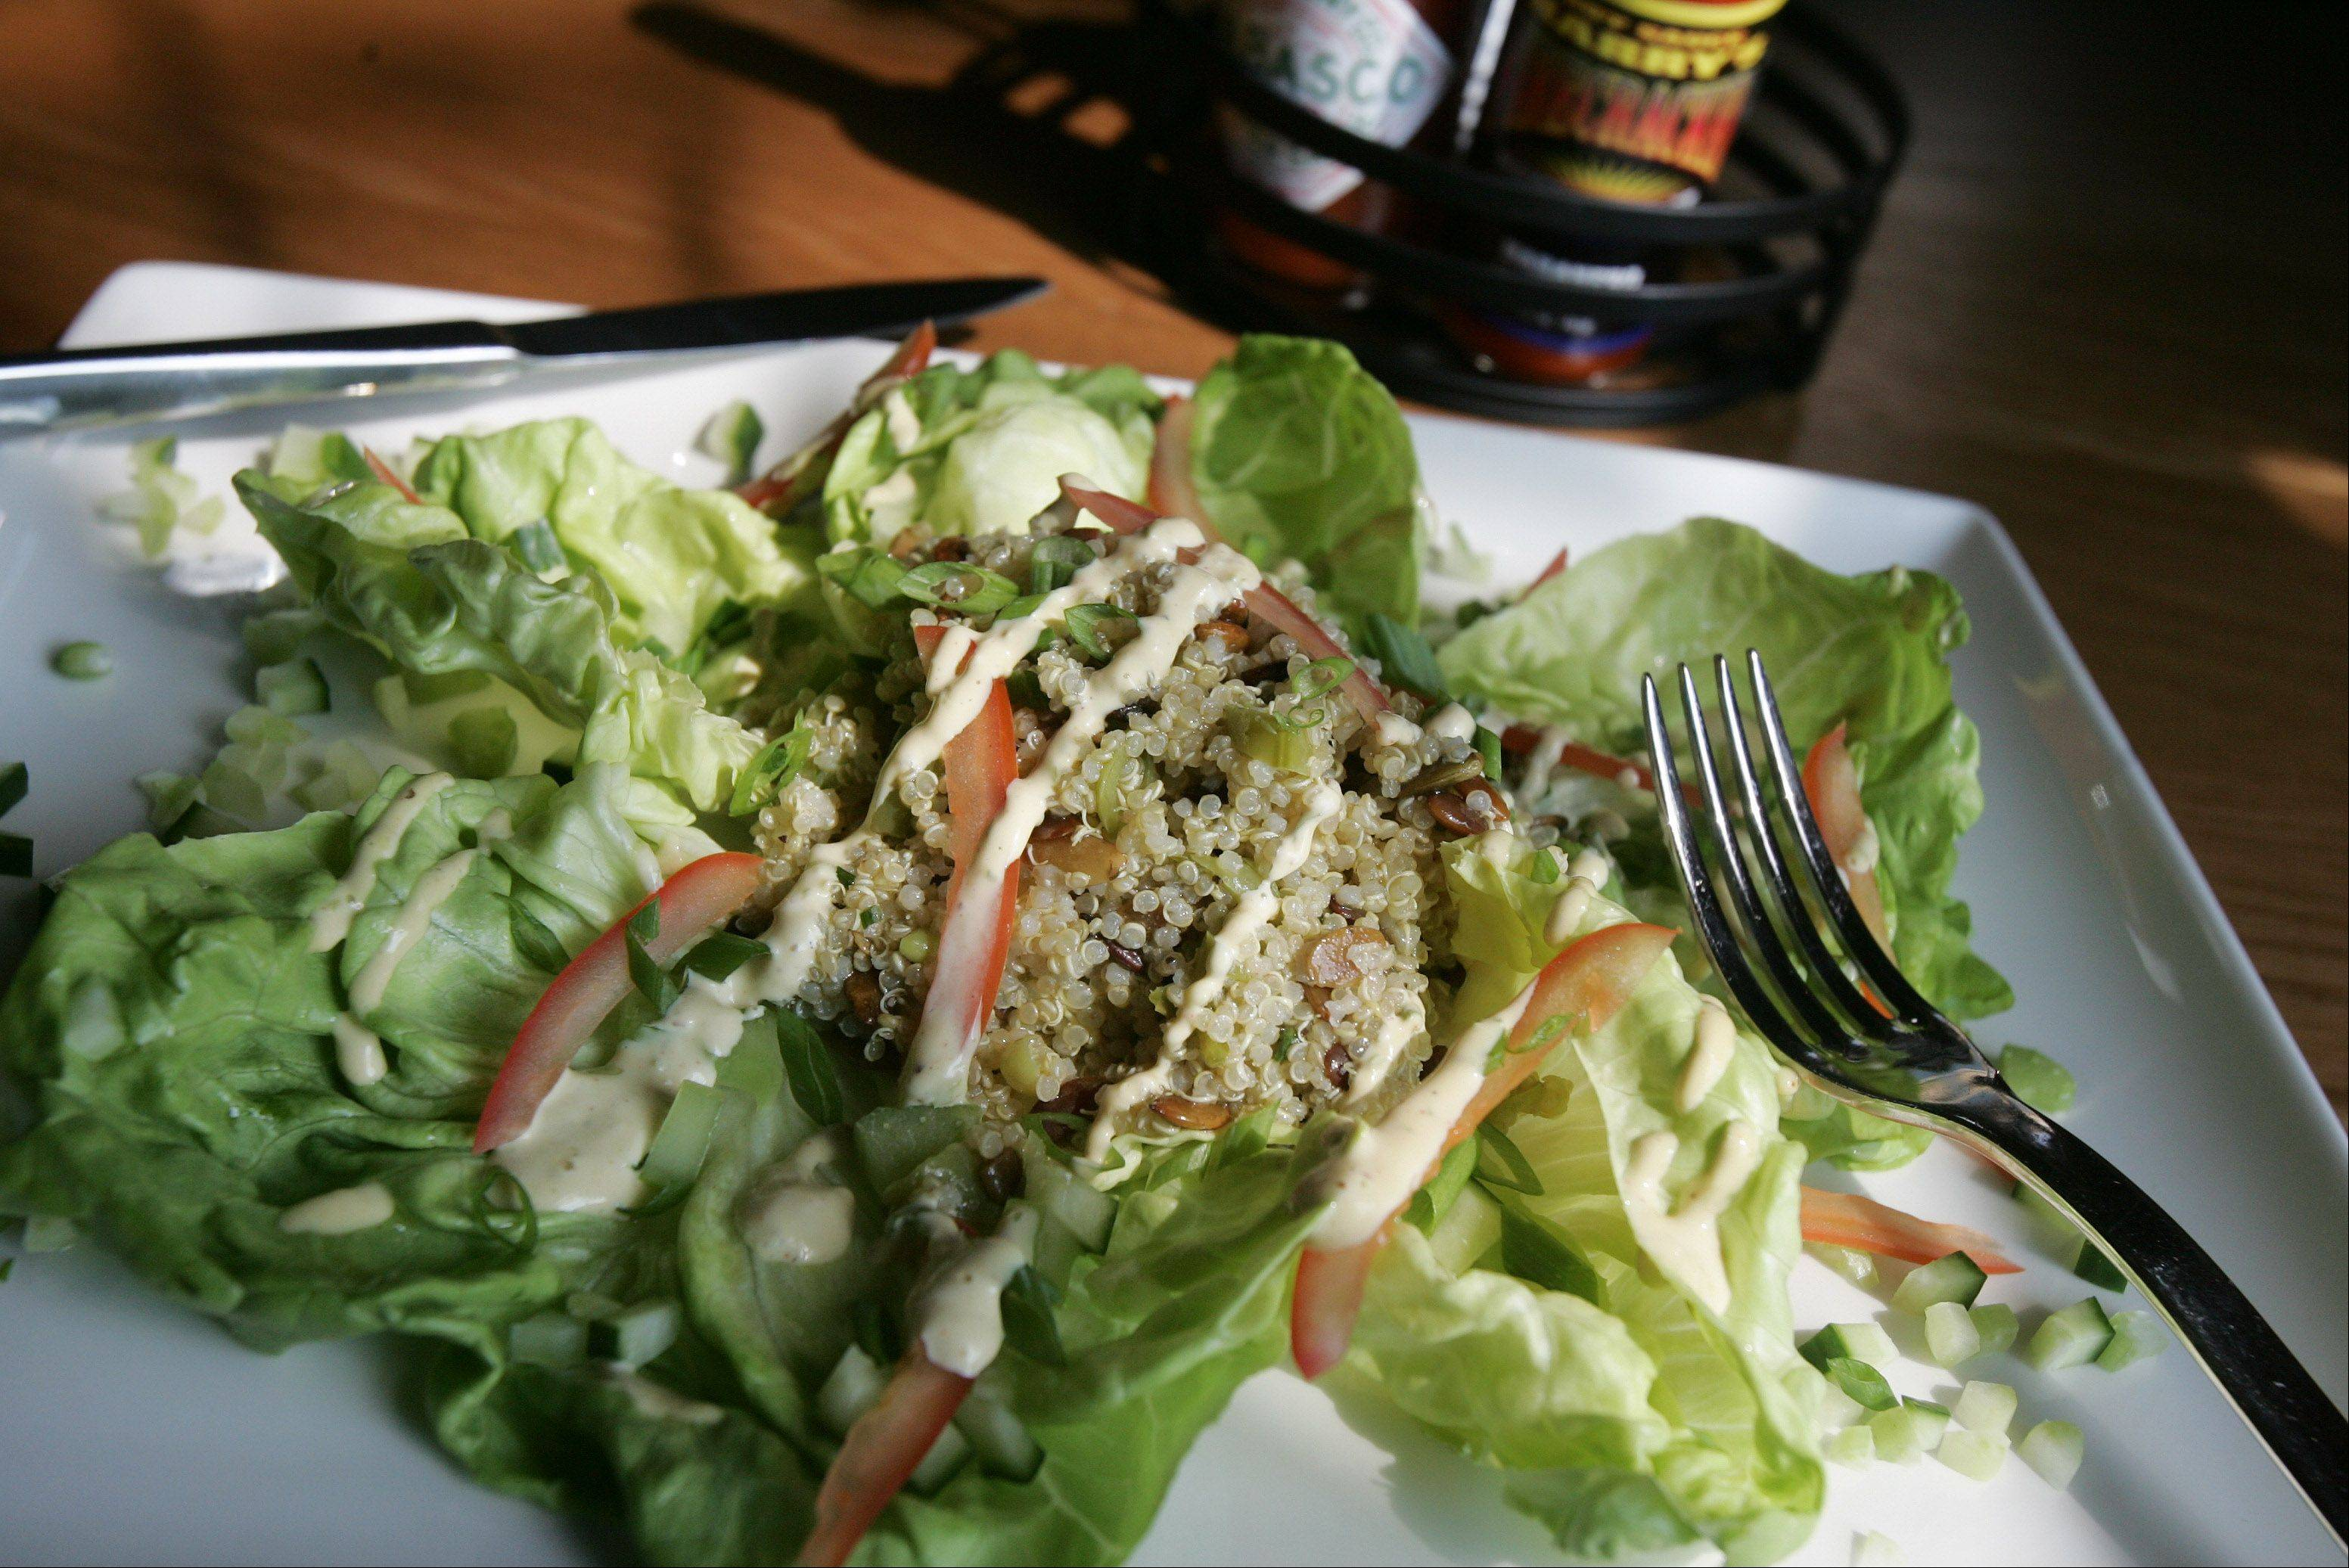 The quinoa salad at Chili U is spiked with a spicy Creole mustard aoli.